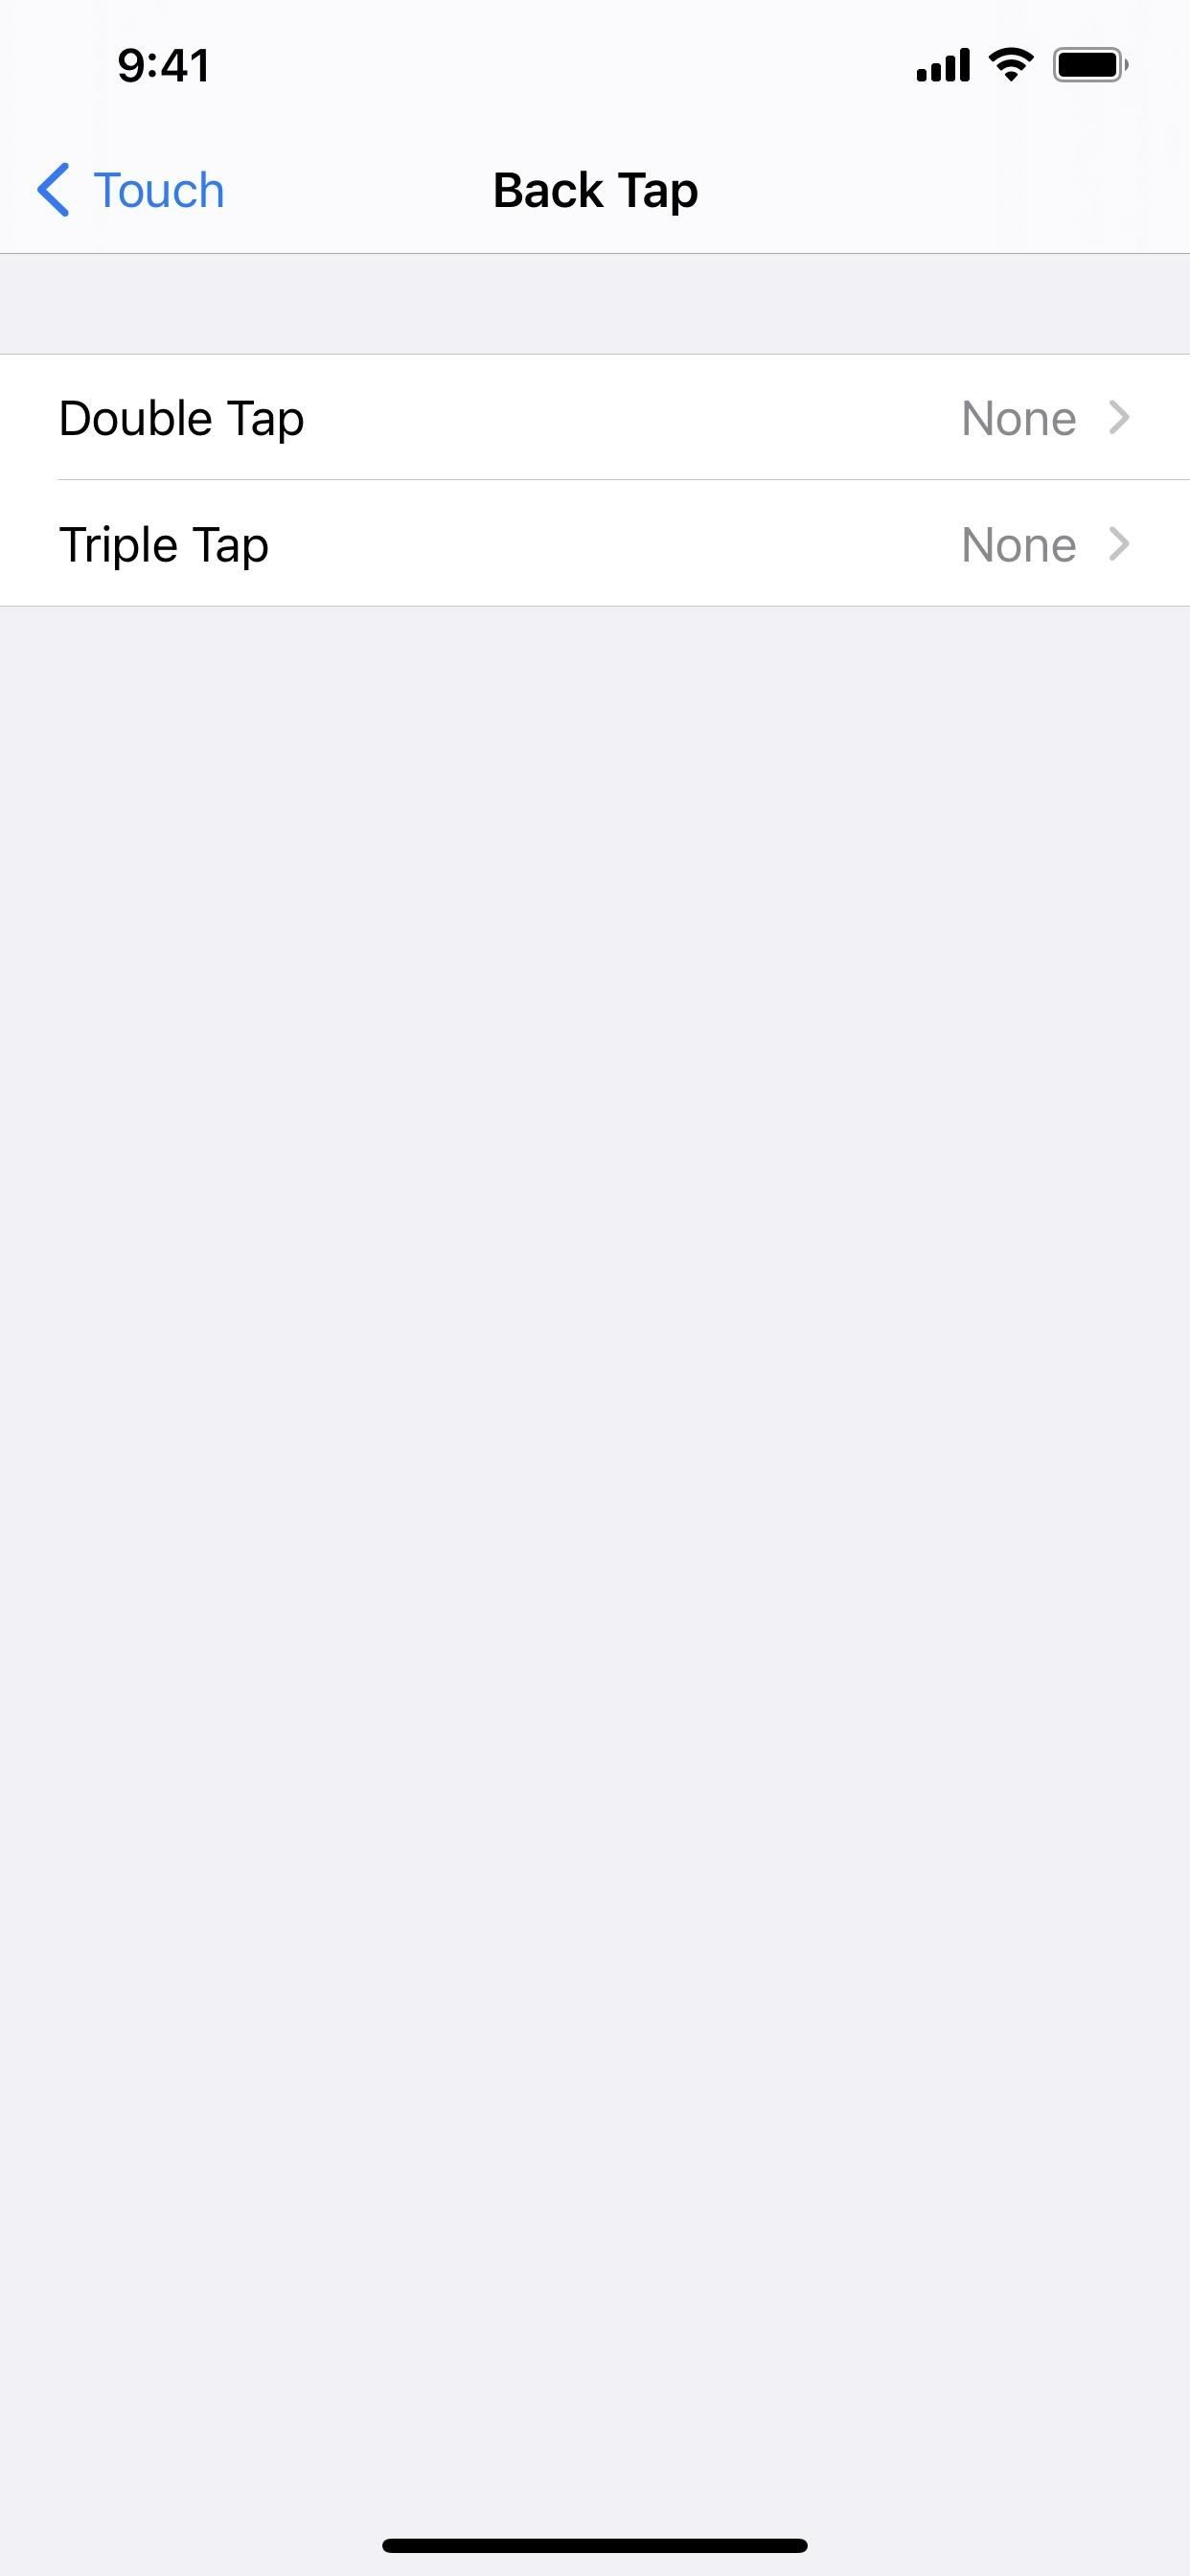 This Shortcut Translates What You Say to Text in Any Language in Any App on Your iPhone